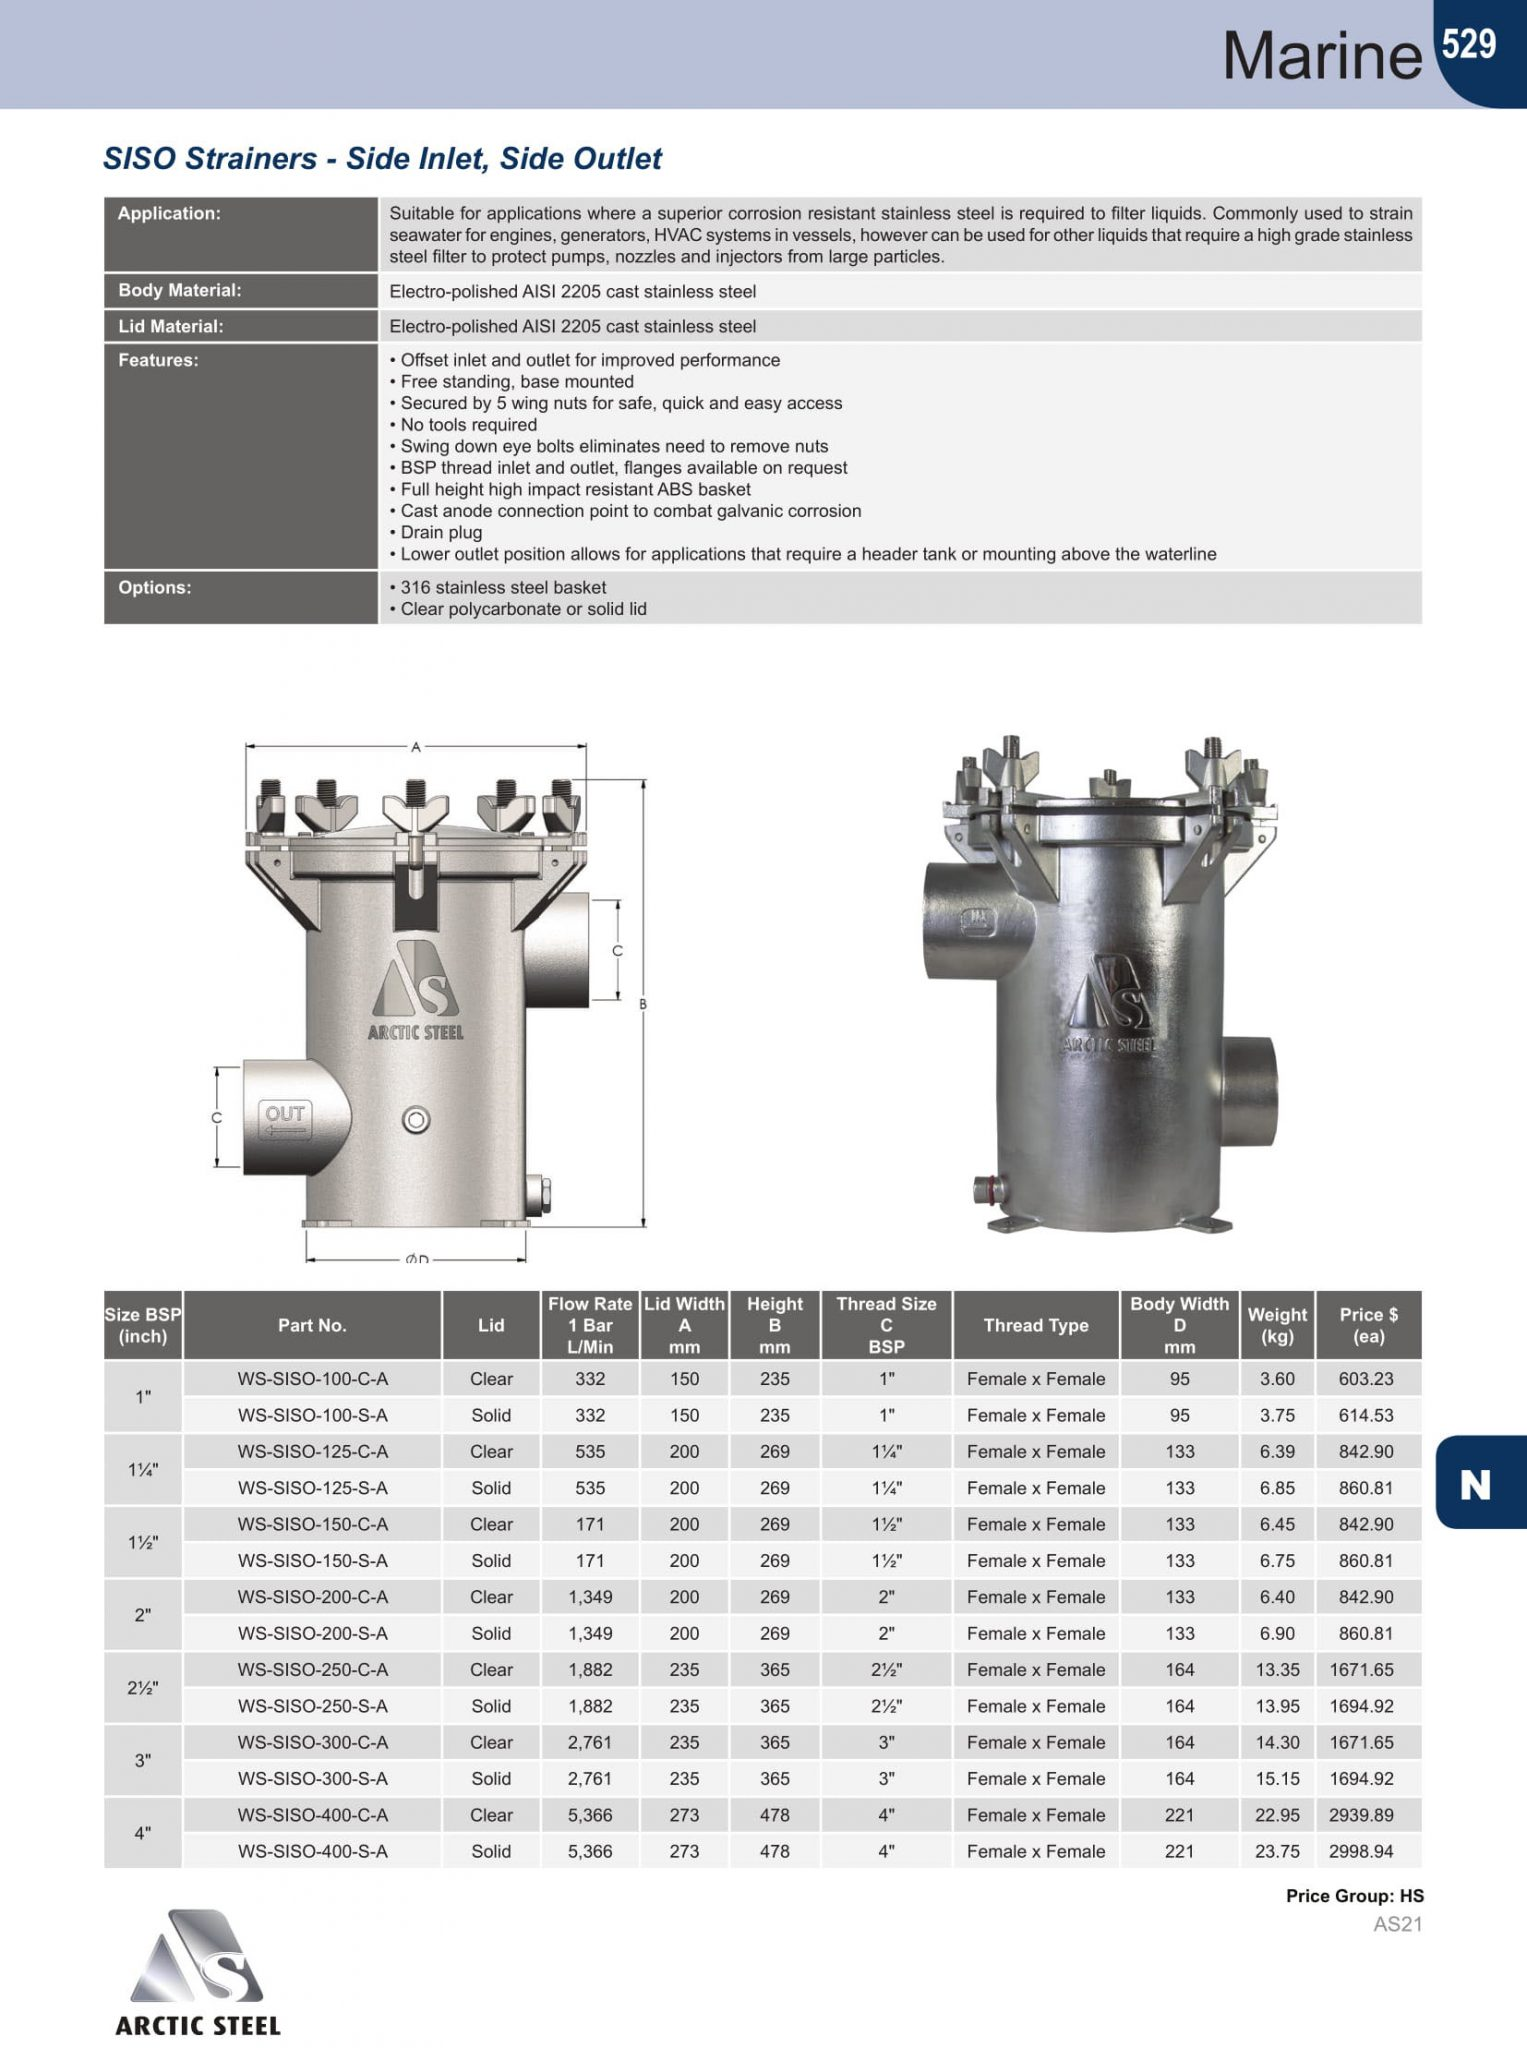 Arctic Steel Strainers - SISO Strainers - Side Inlet, Side Outlet